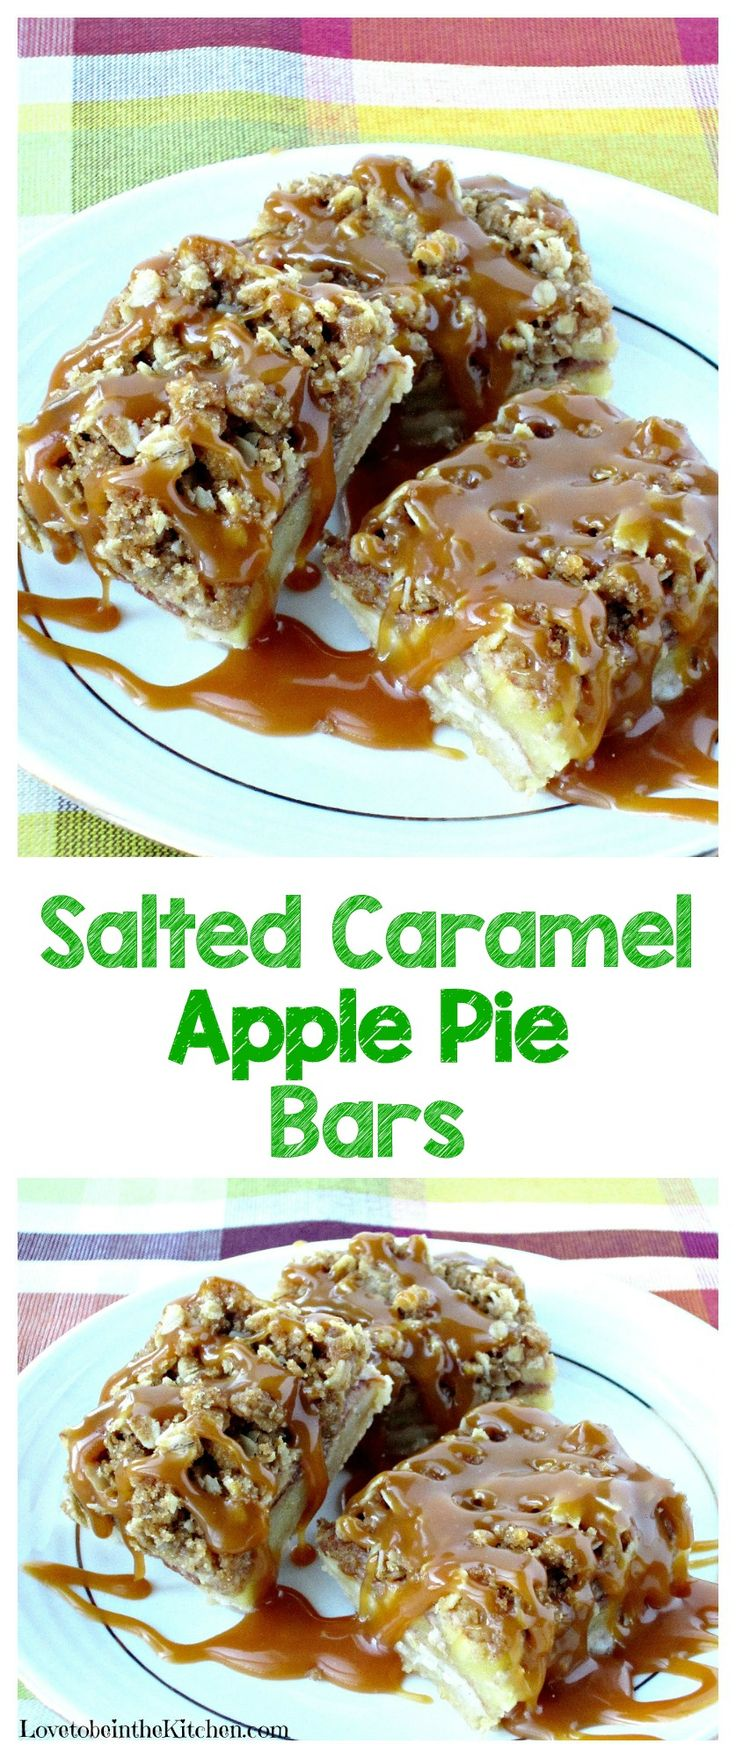 Salted Caramel Apple Pie Bars are quicker and tastier than apple pie! A buttery crust, topped with apples tossed with cinnamon, then sprinkled with streusel. A delicious drizzle of homemade salted caramel is added to make this dessert even more amazing!